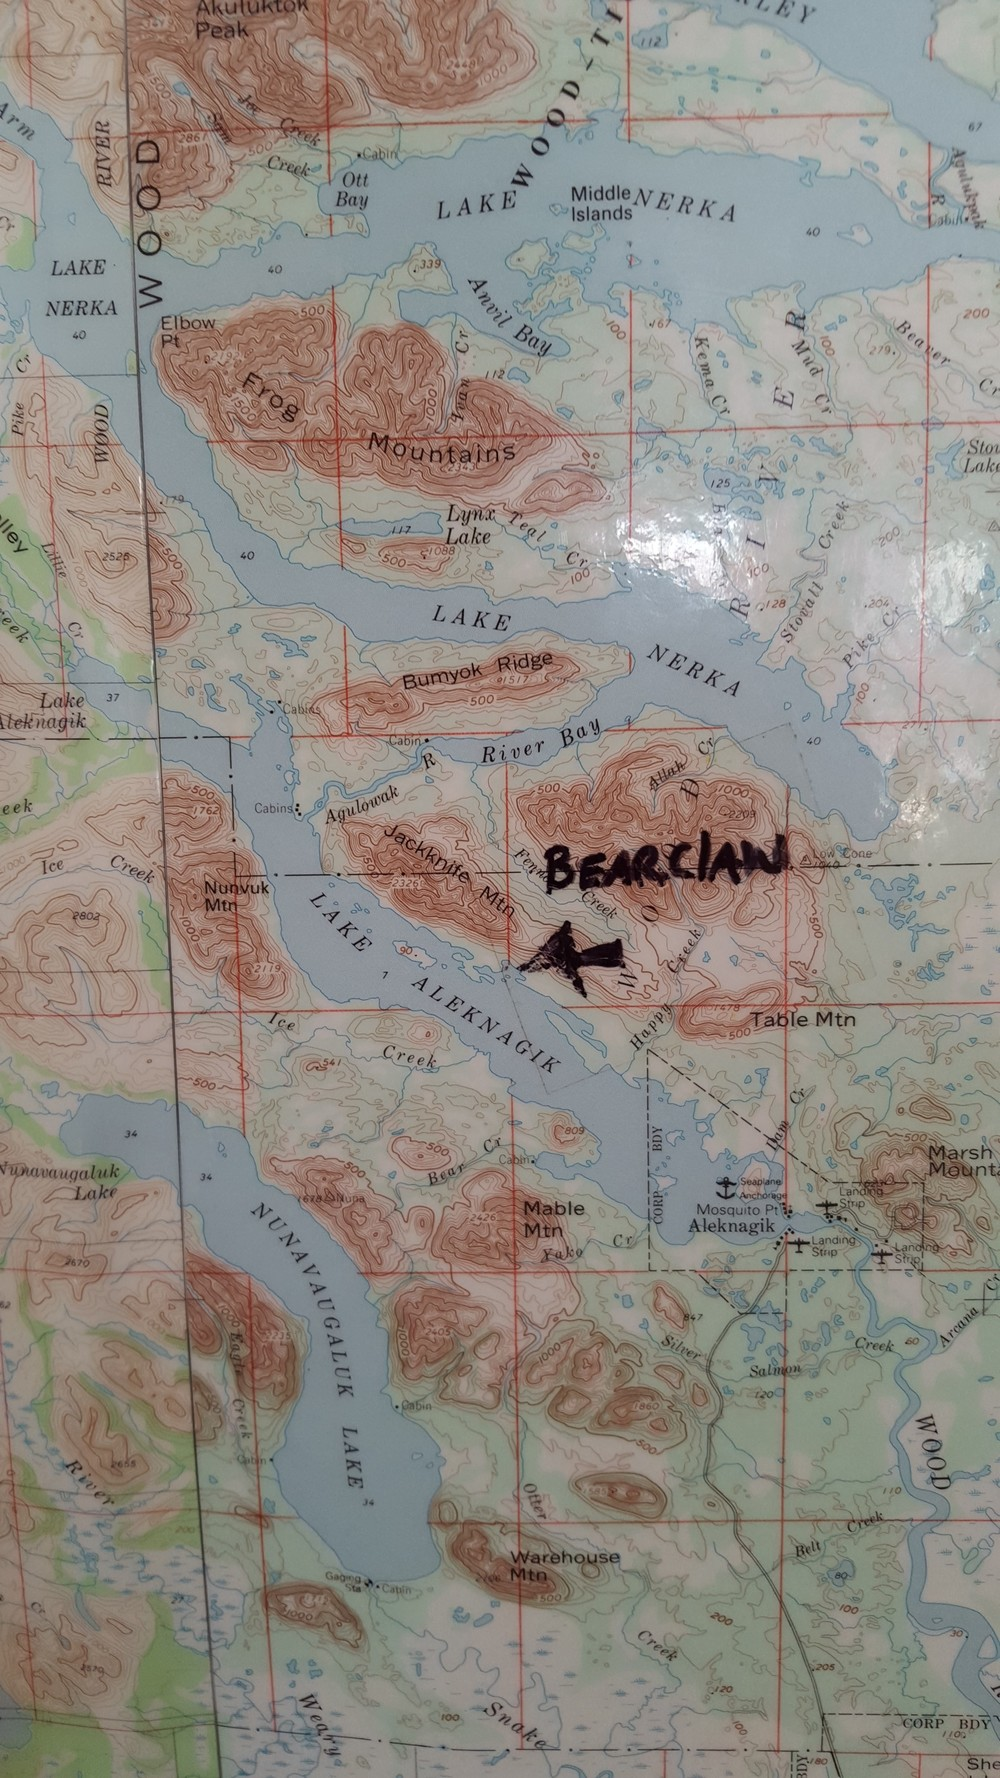 59.355154 - 158.807360 are the coordinates for Bearclaw Lodge